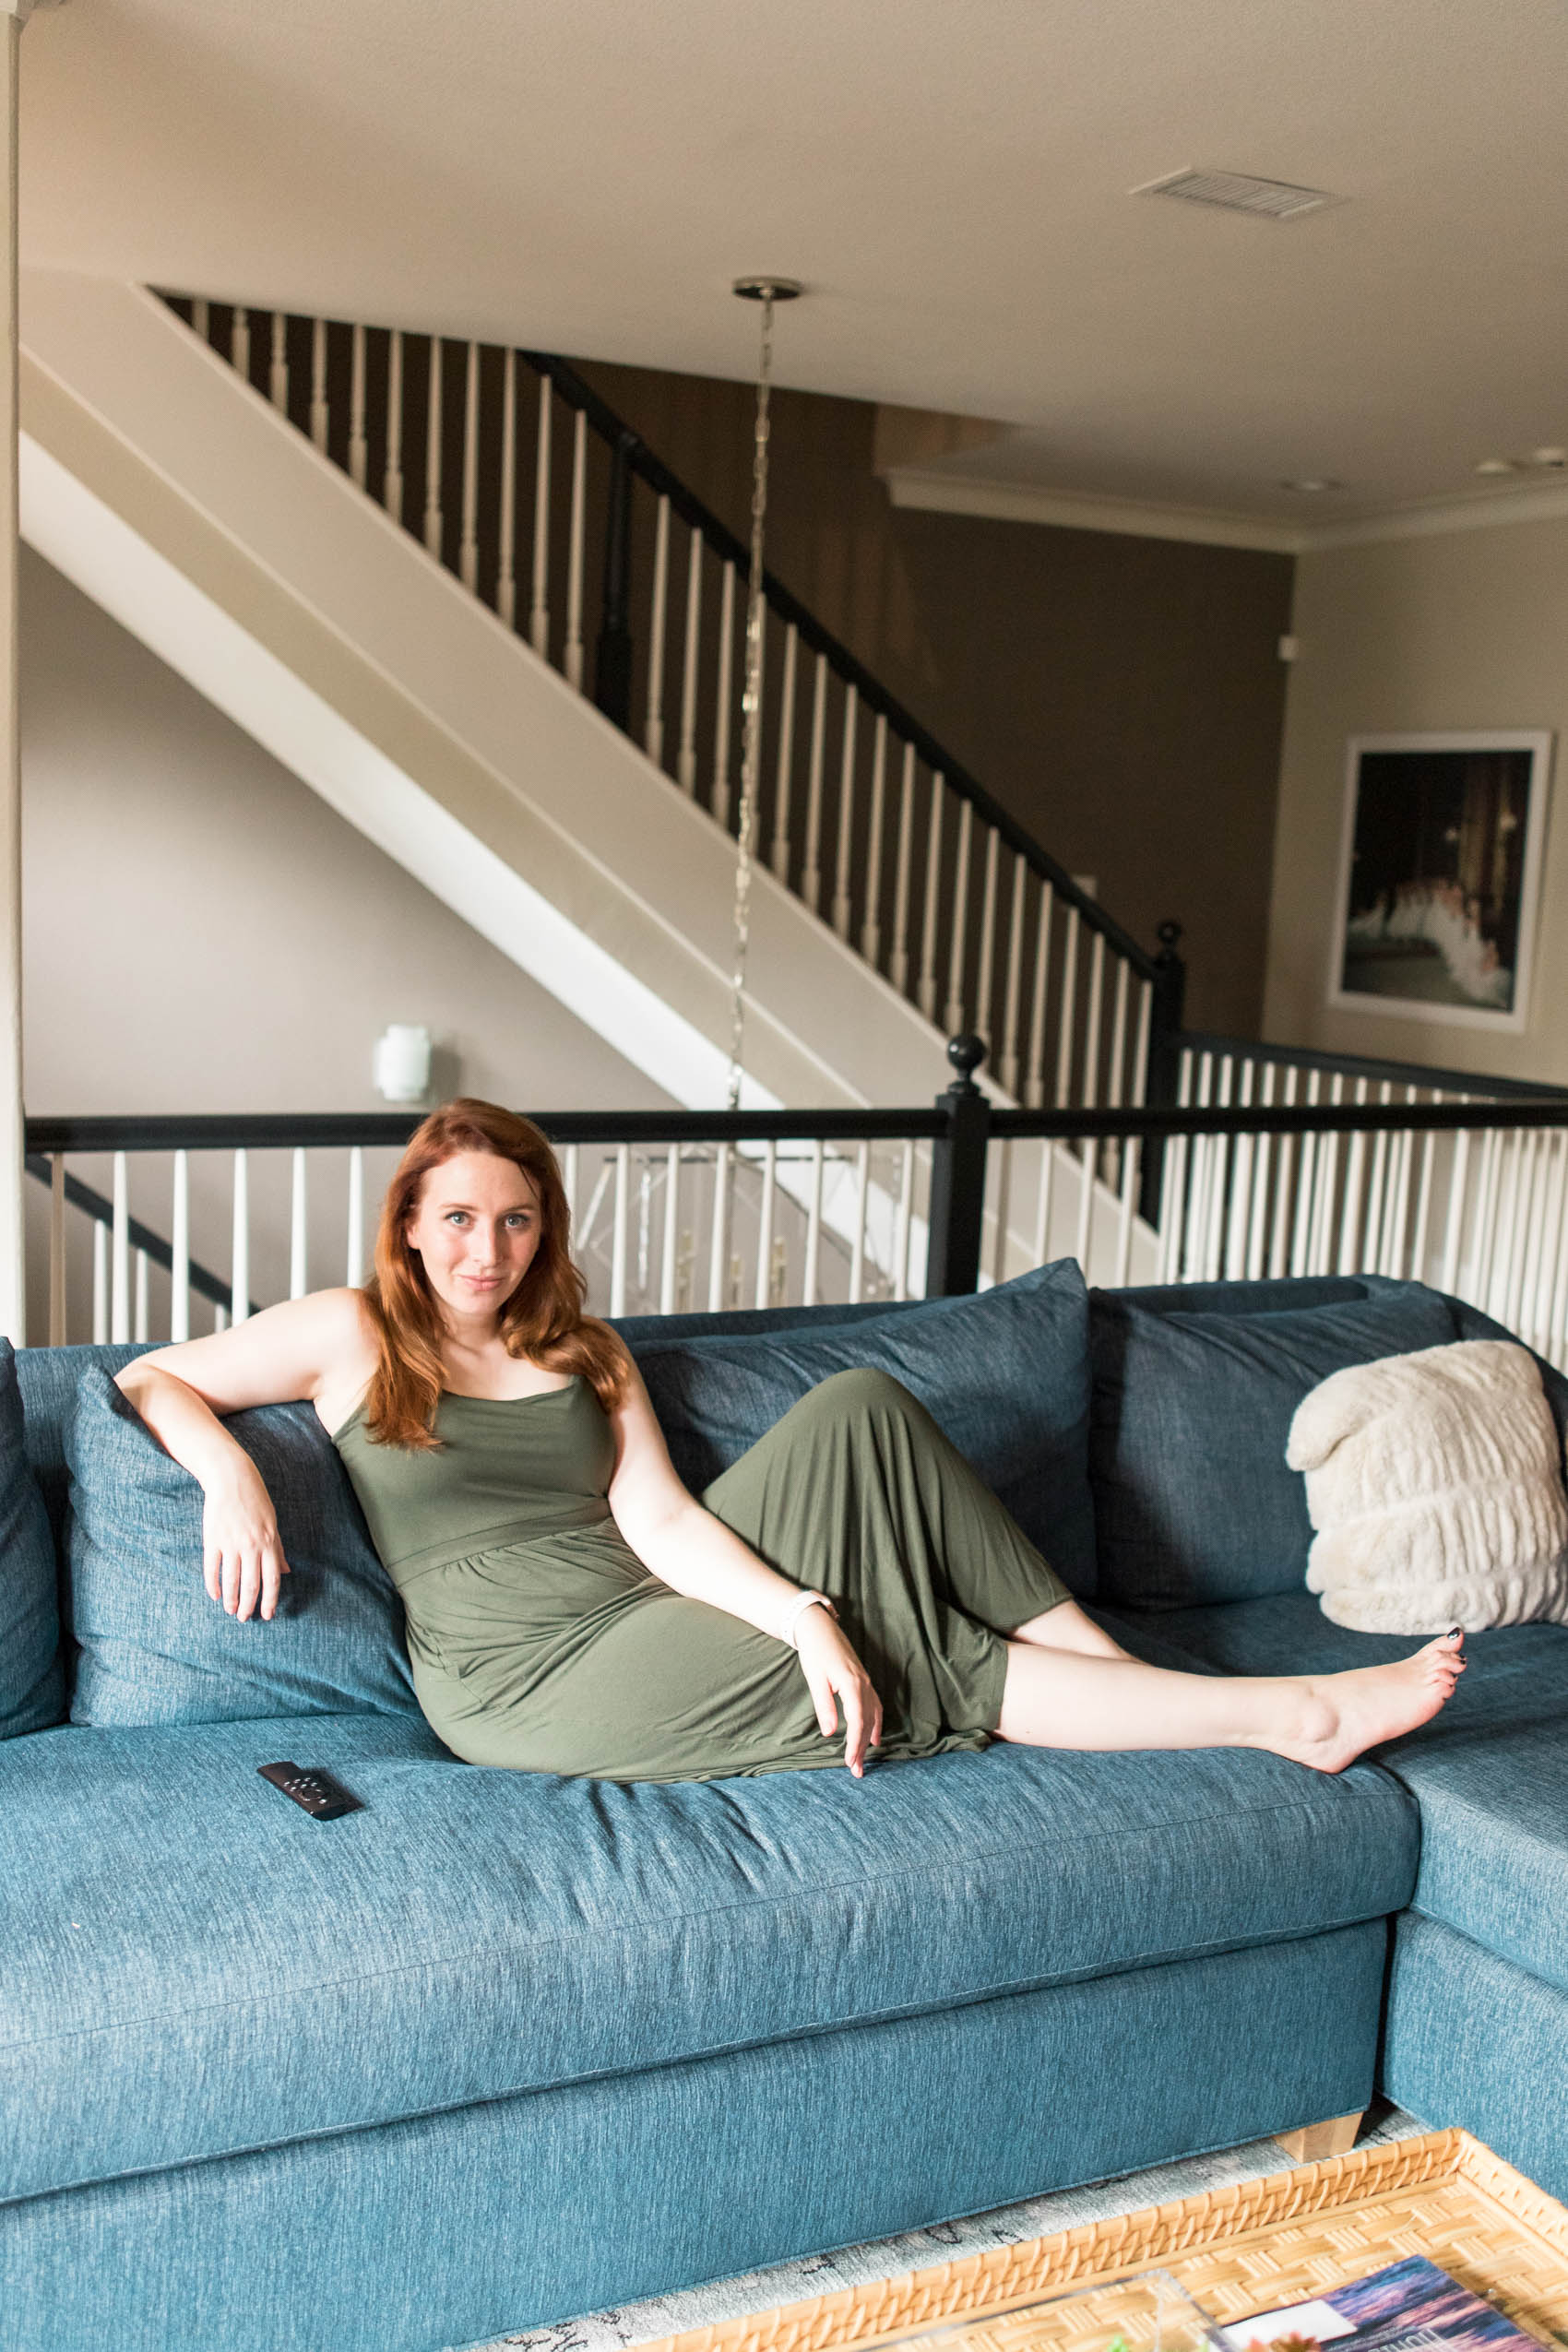 Blogger on denim couch sharing what to watch on Netflix while wearing loungewear dress